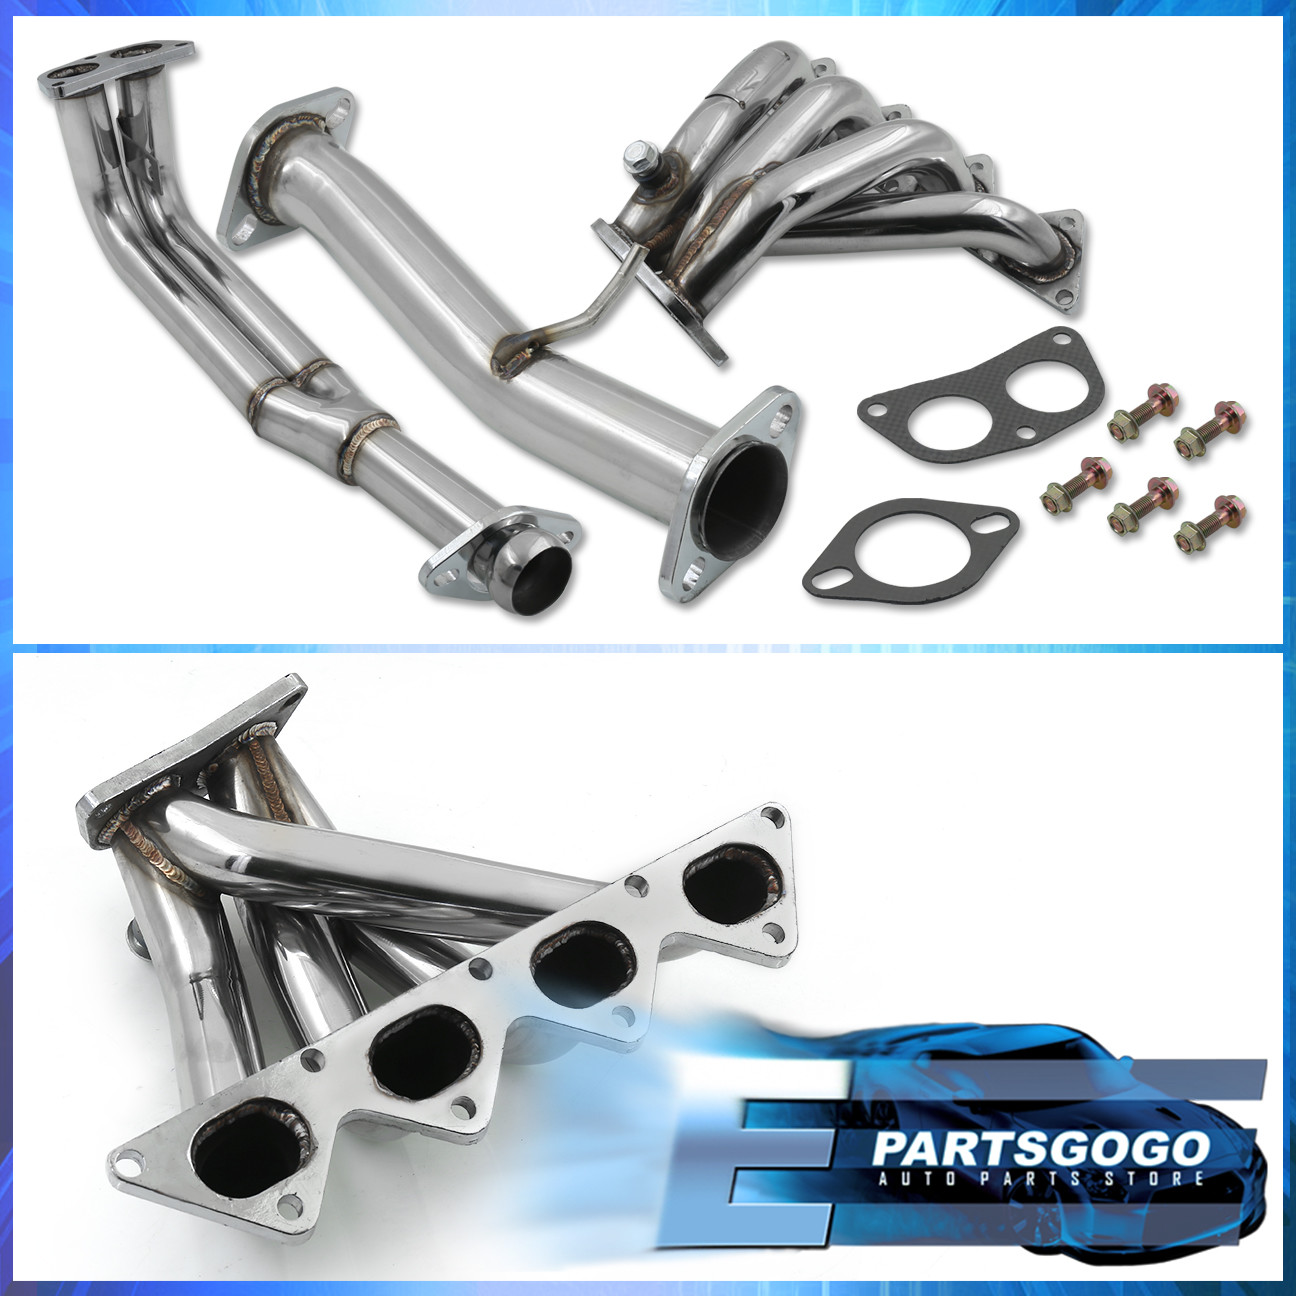 1990-1994 Eclipse Talon Laser Nt Non-Turbo 4-2-1 3Pc Stainless Exhaust Header